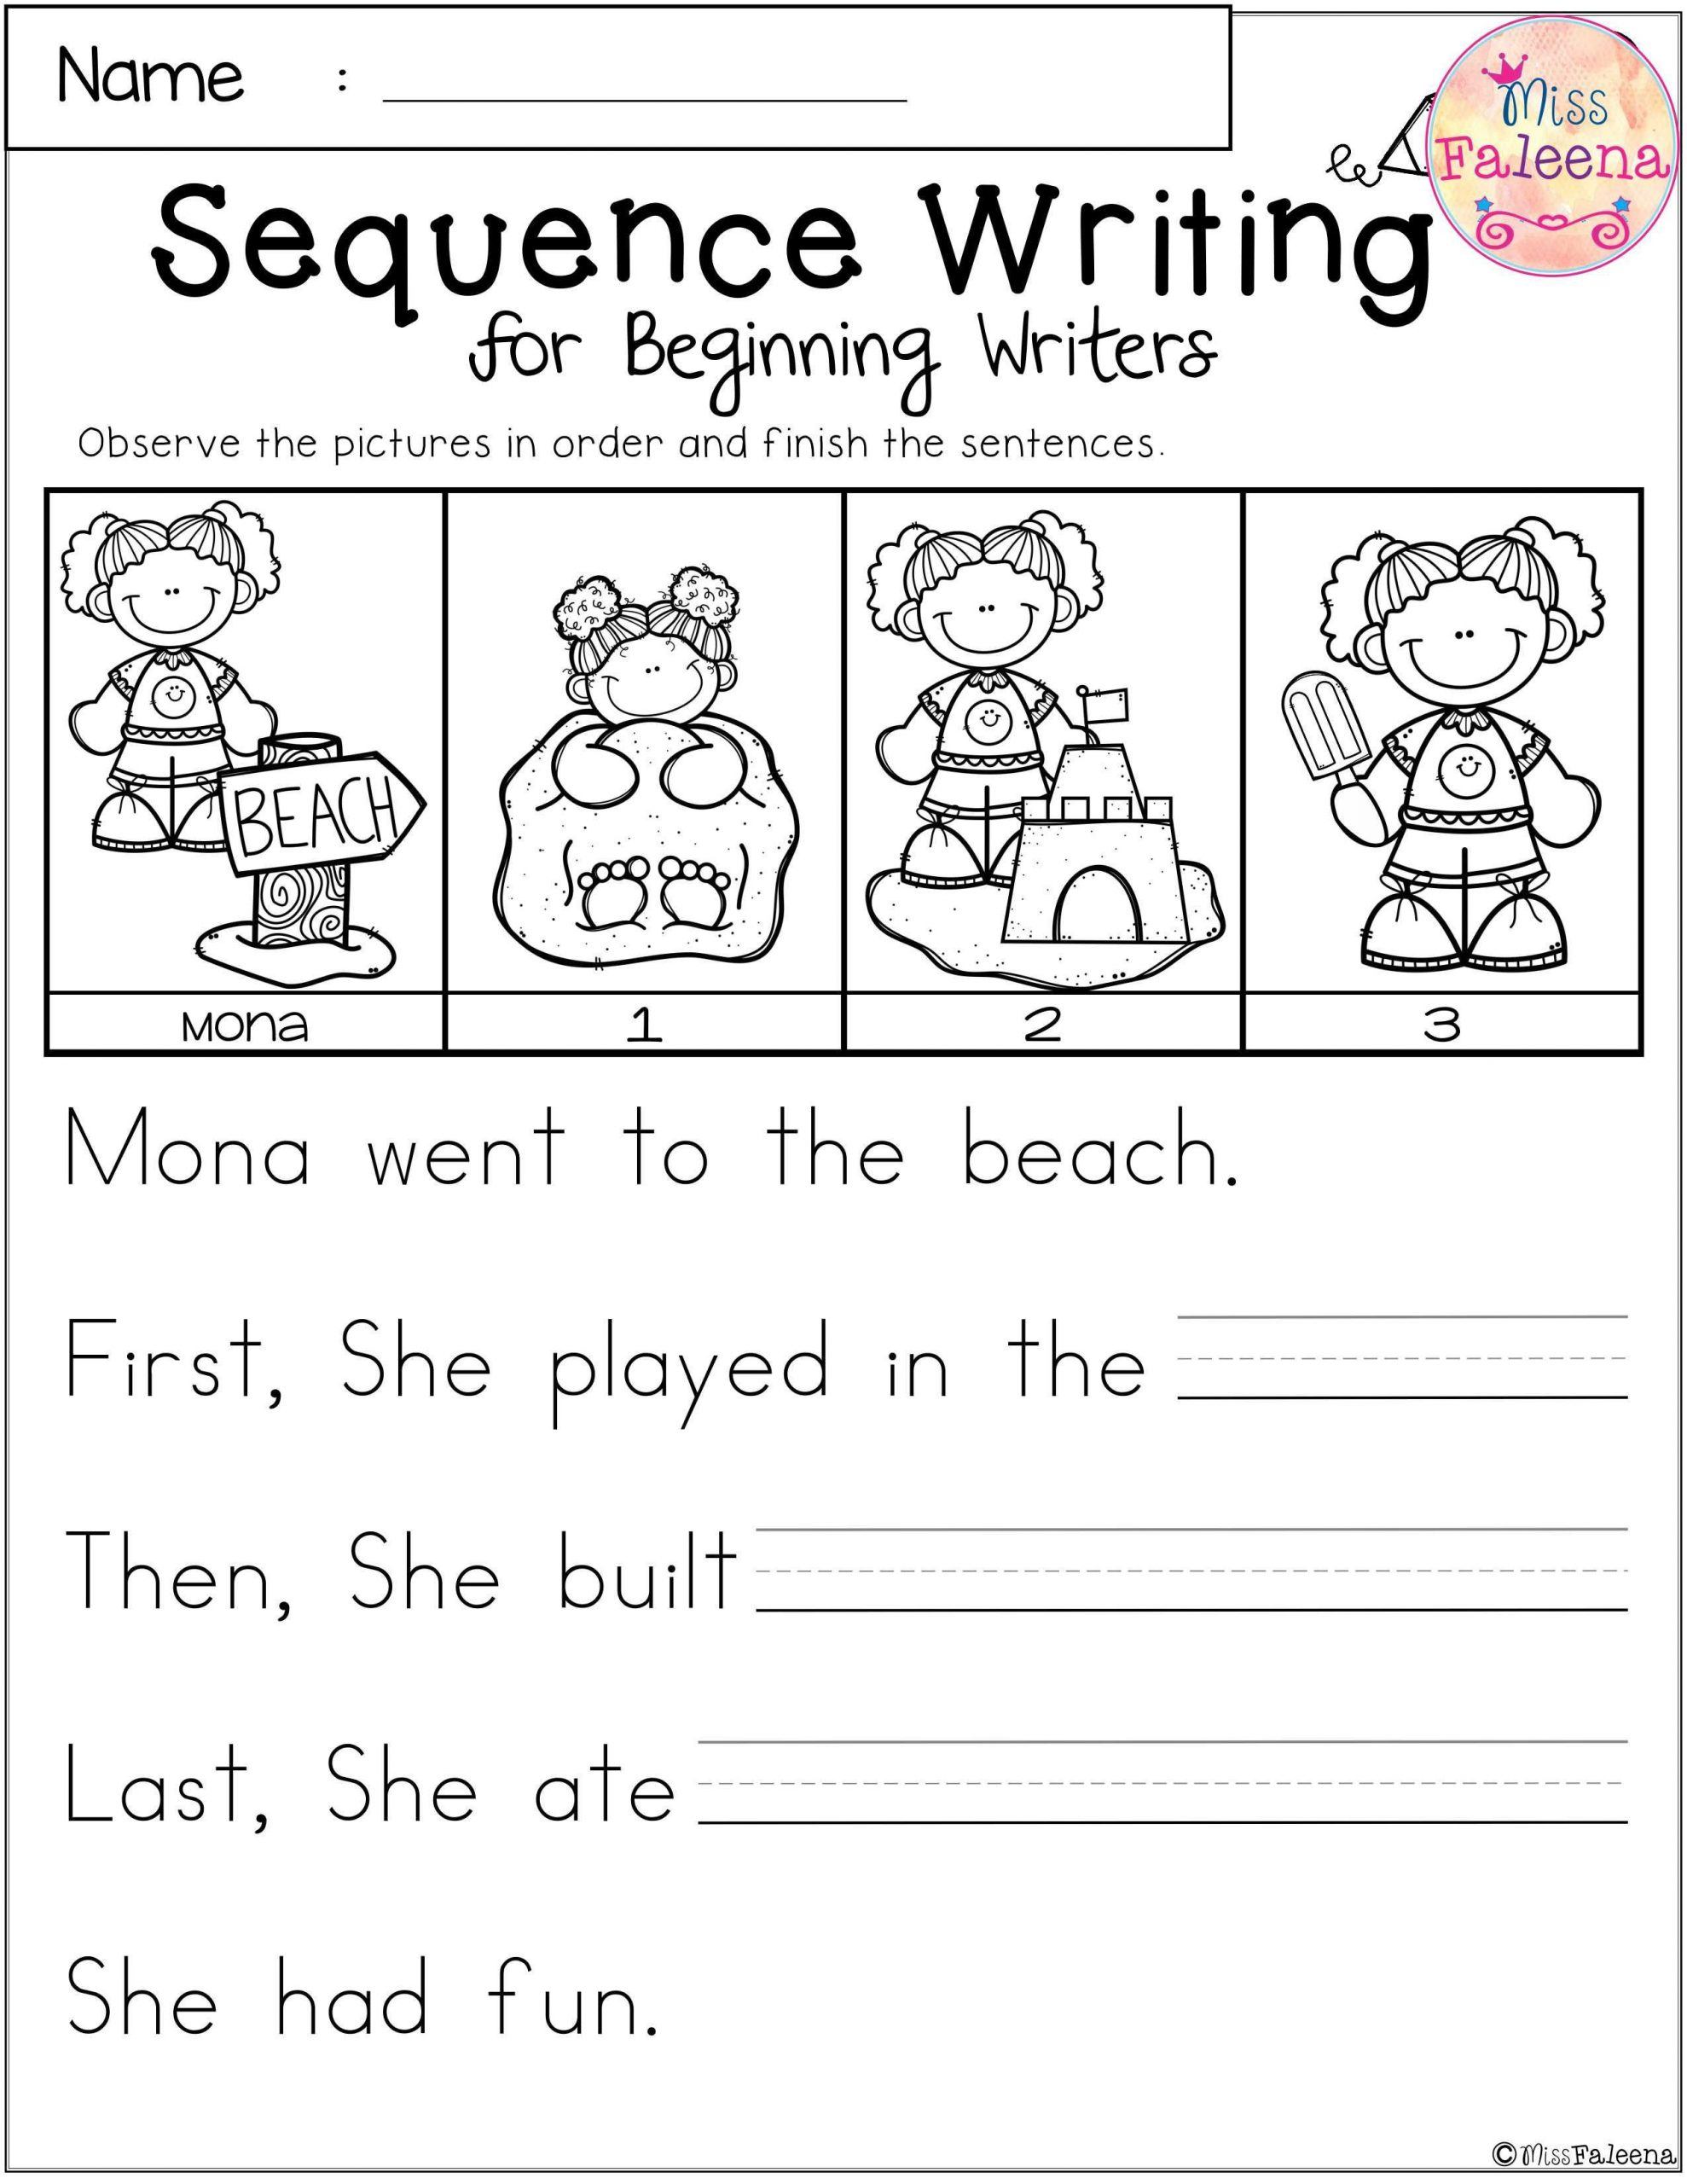 Sequencing Worksheets 2nd Grade Free Sequence Writing for Beginning Writers